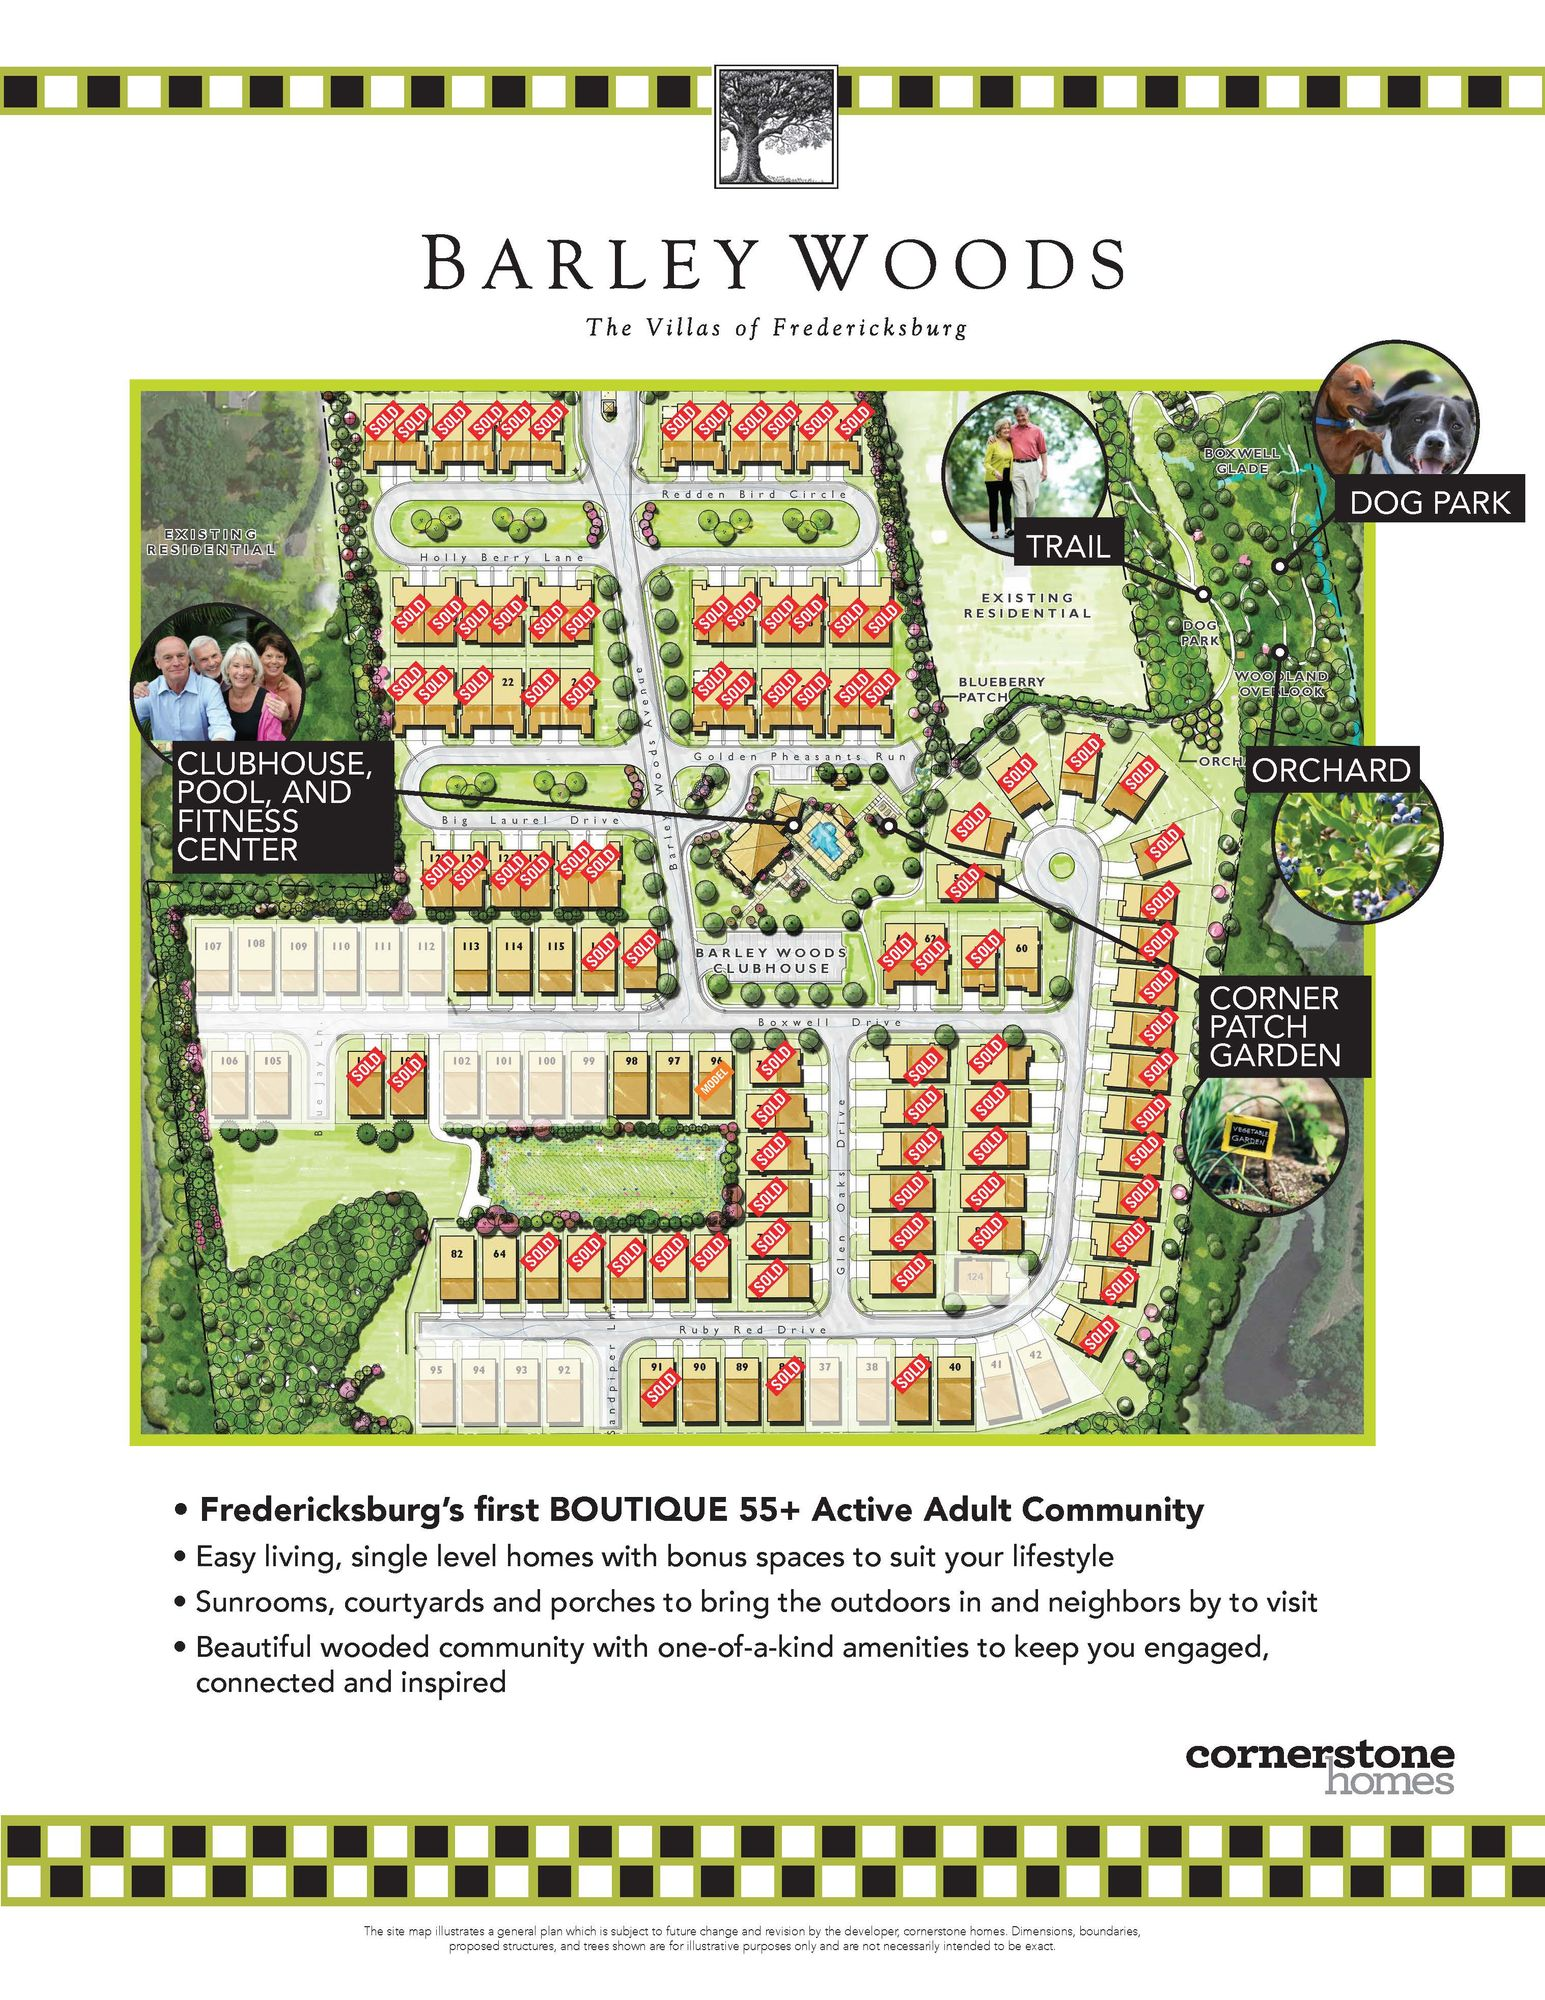 Barley Woods - The Villas of Fredericksburg